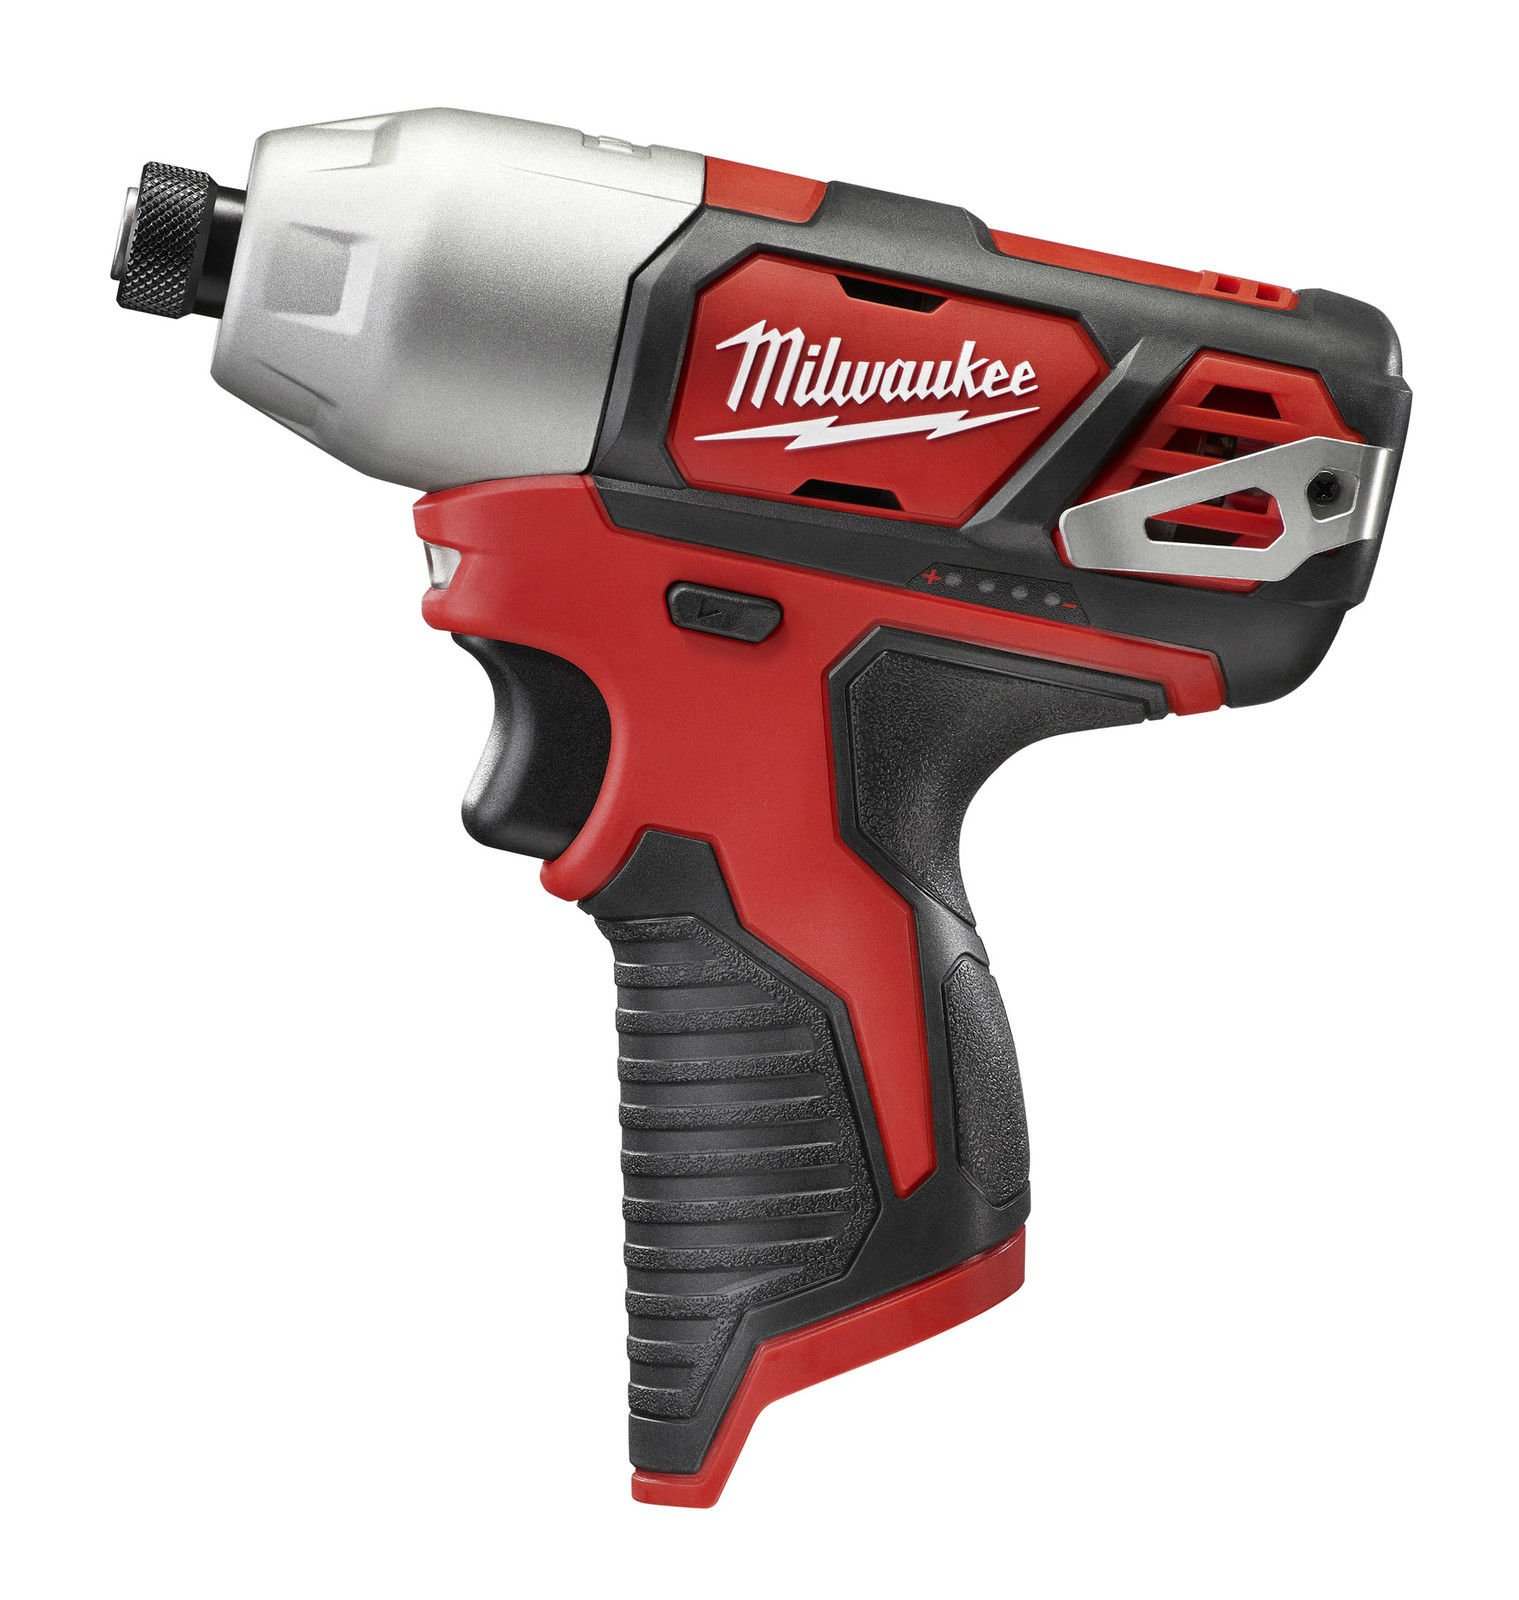 Milwaukee 2462-20 M12 1/4'' Hex Impact Driver with Belt Clip - Tool Only